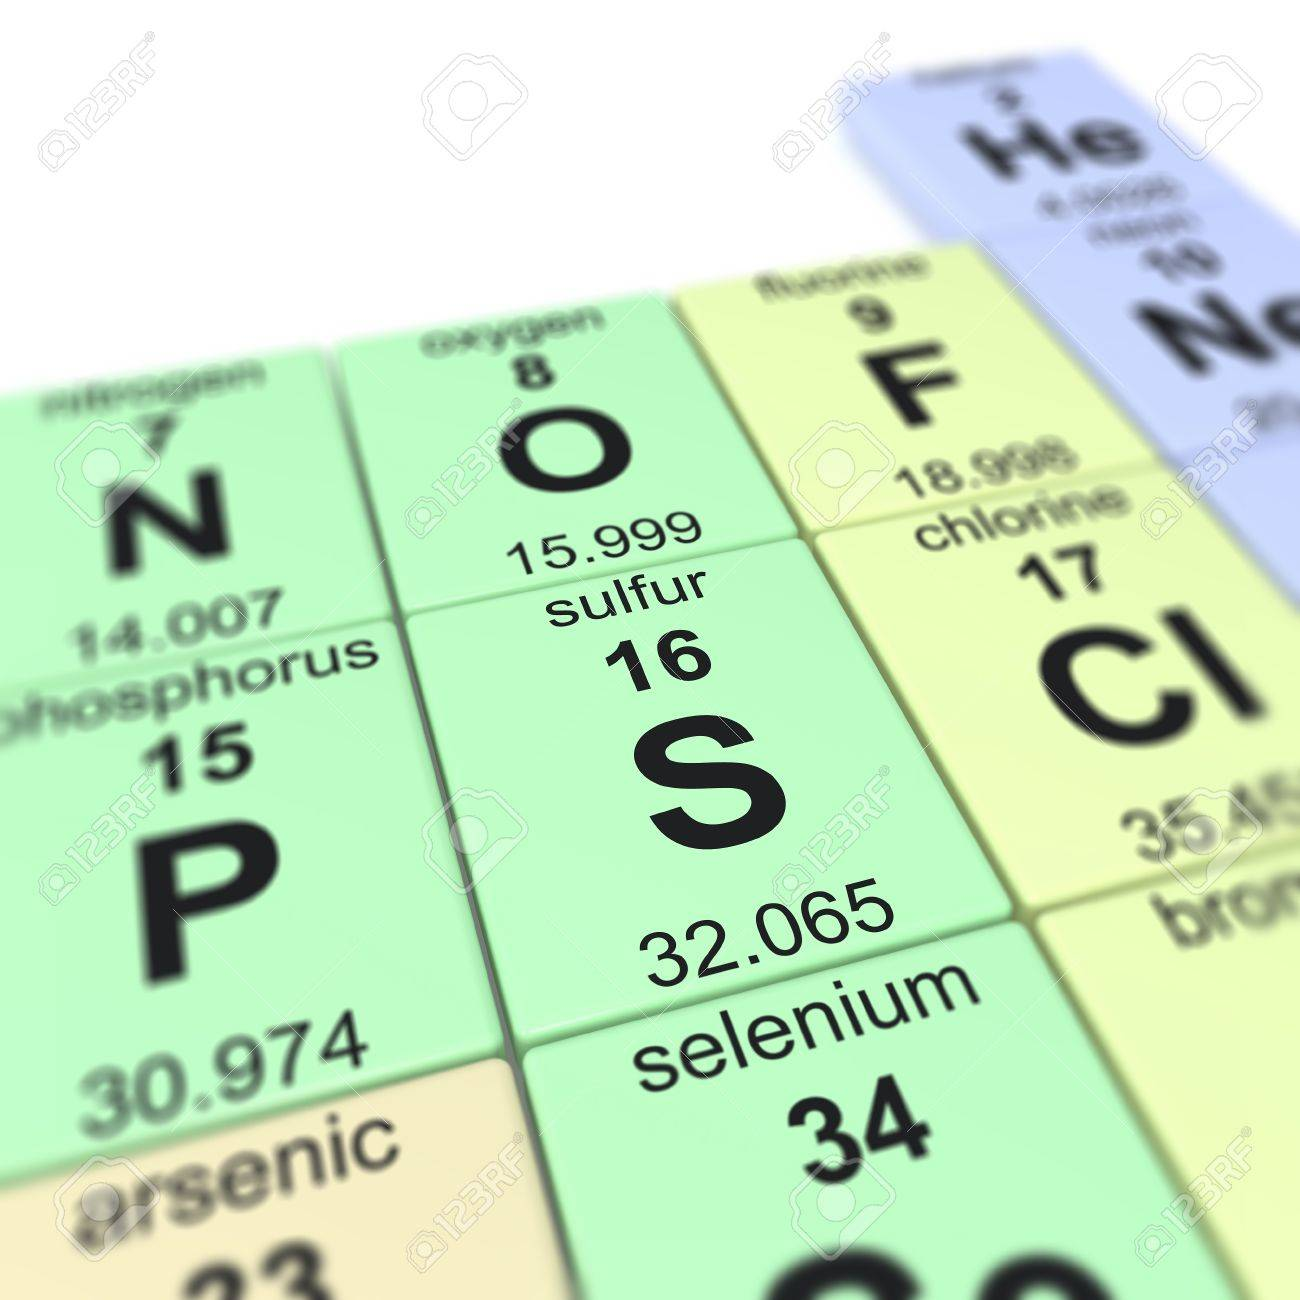 Periodic table of elements focused on sulfur stock photo picture periodic table of elements focused on sulfur stock photo 20109189 gamestrikefo Choice Image